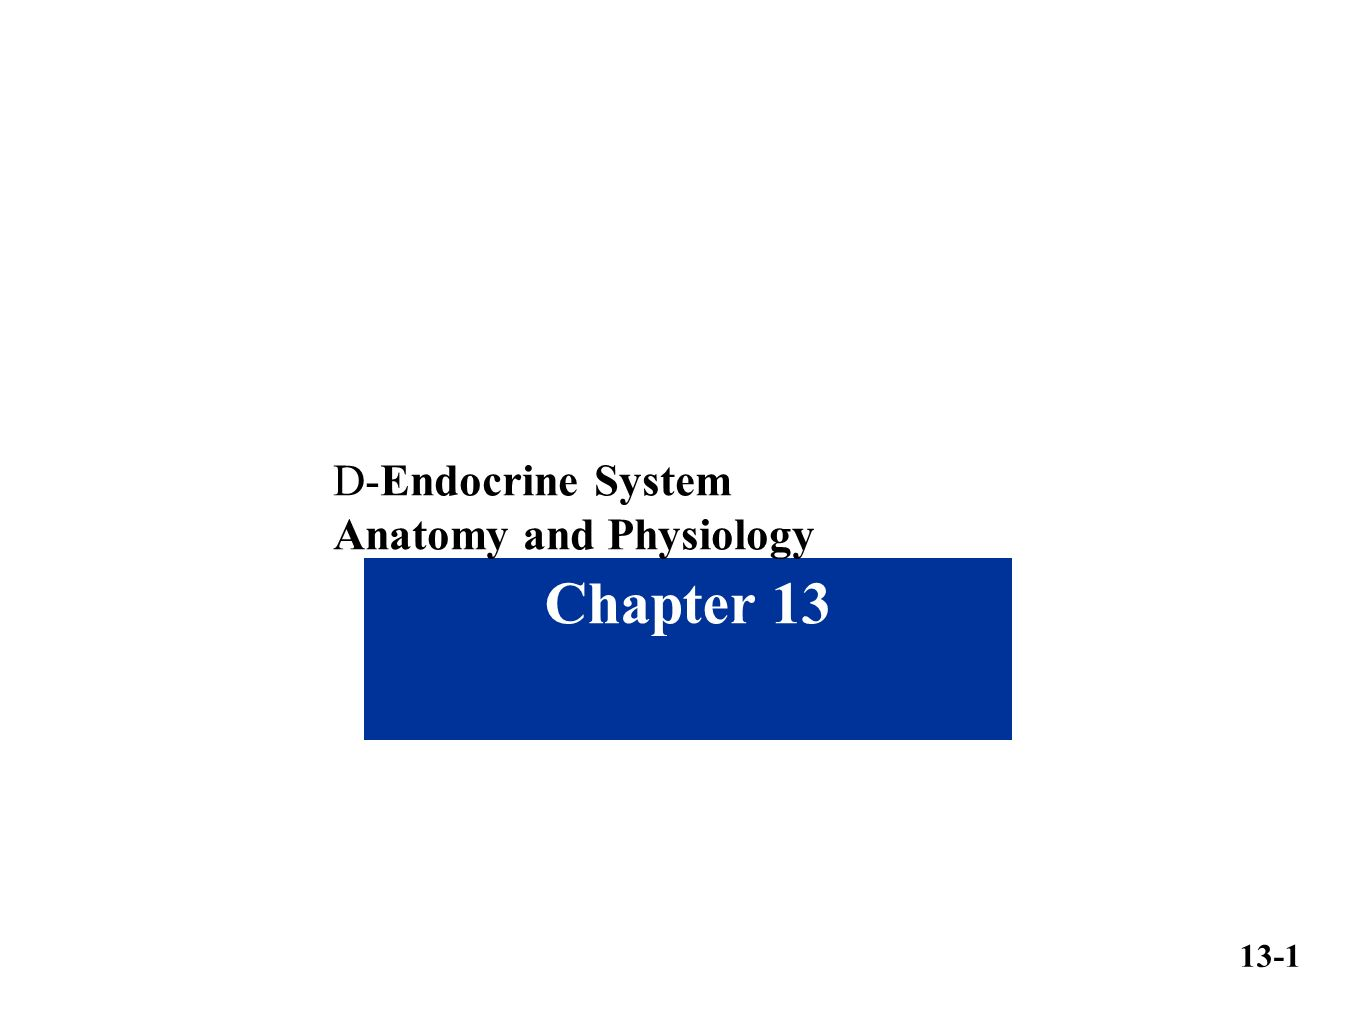 D-Endocrine System Anatomy and Physiology Chapter ppt download